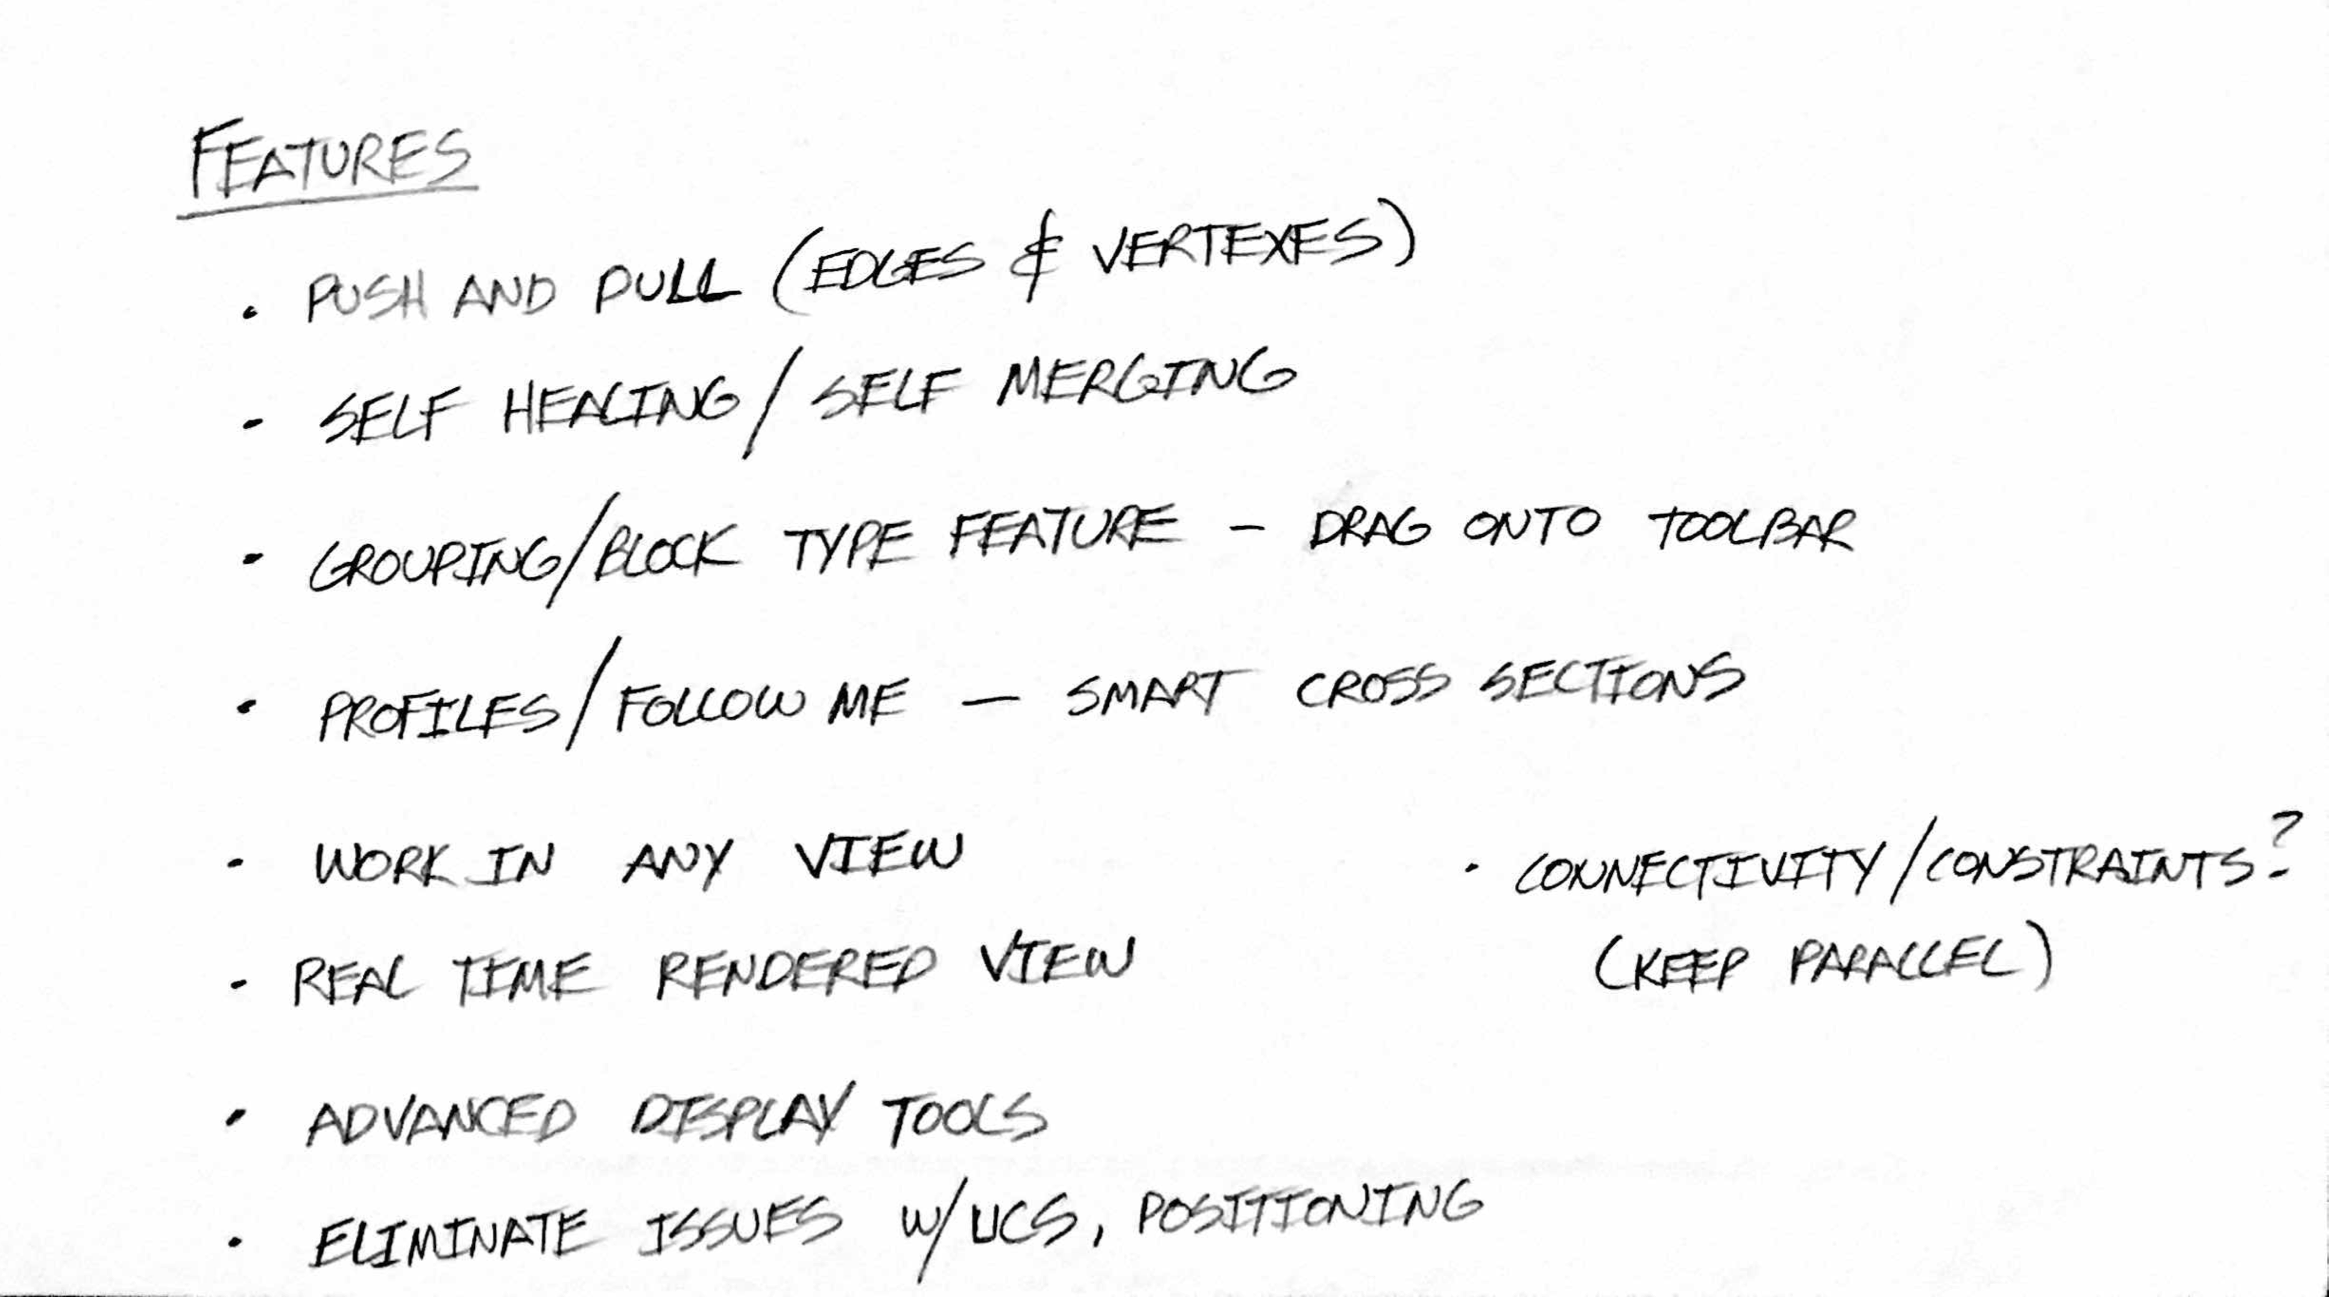 Early notes from Brad Schell for the beginnings of SketchUp